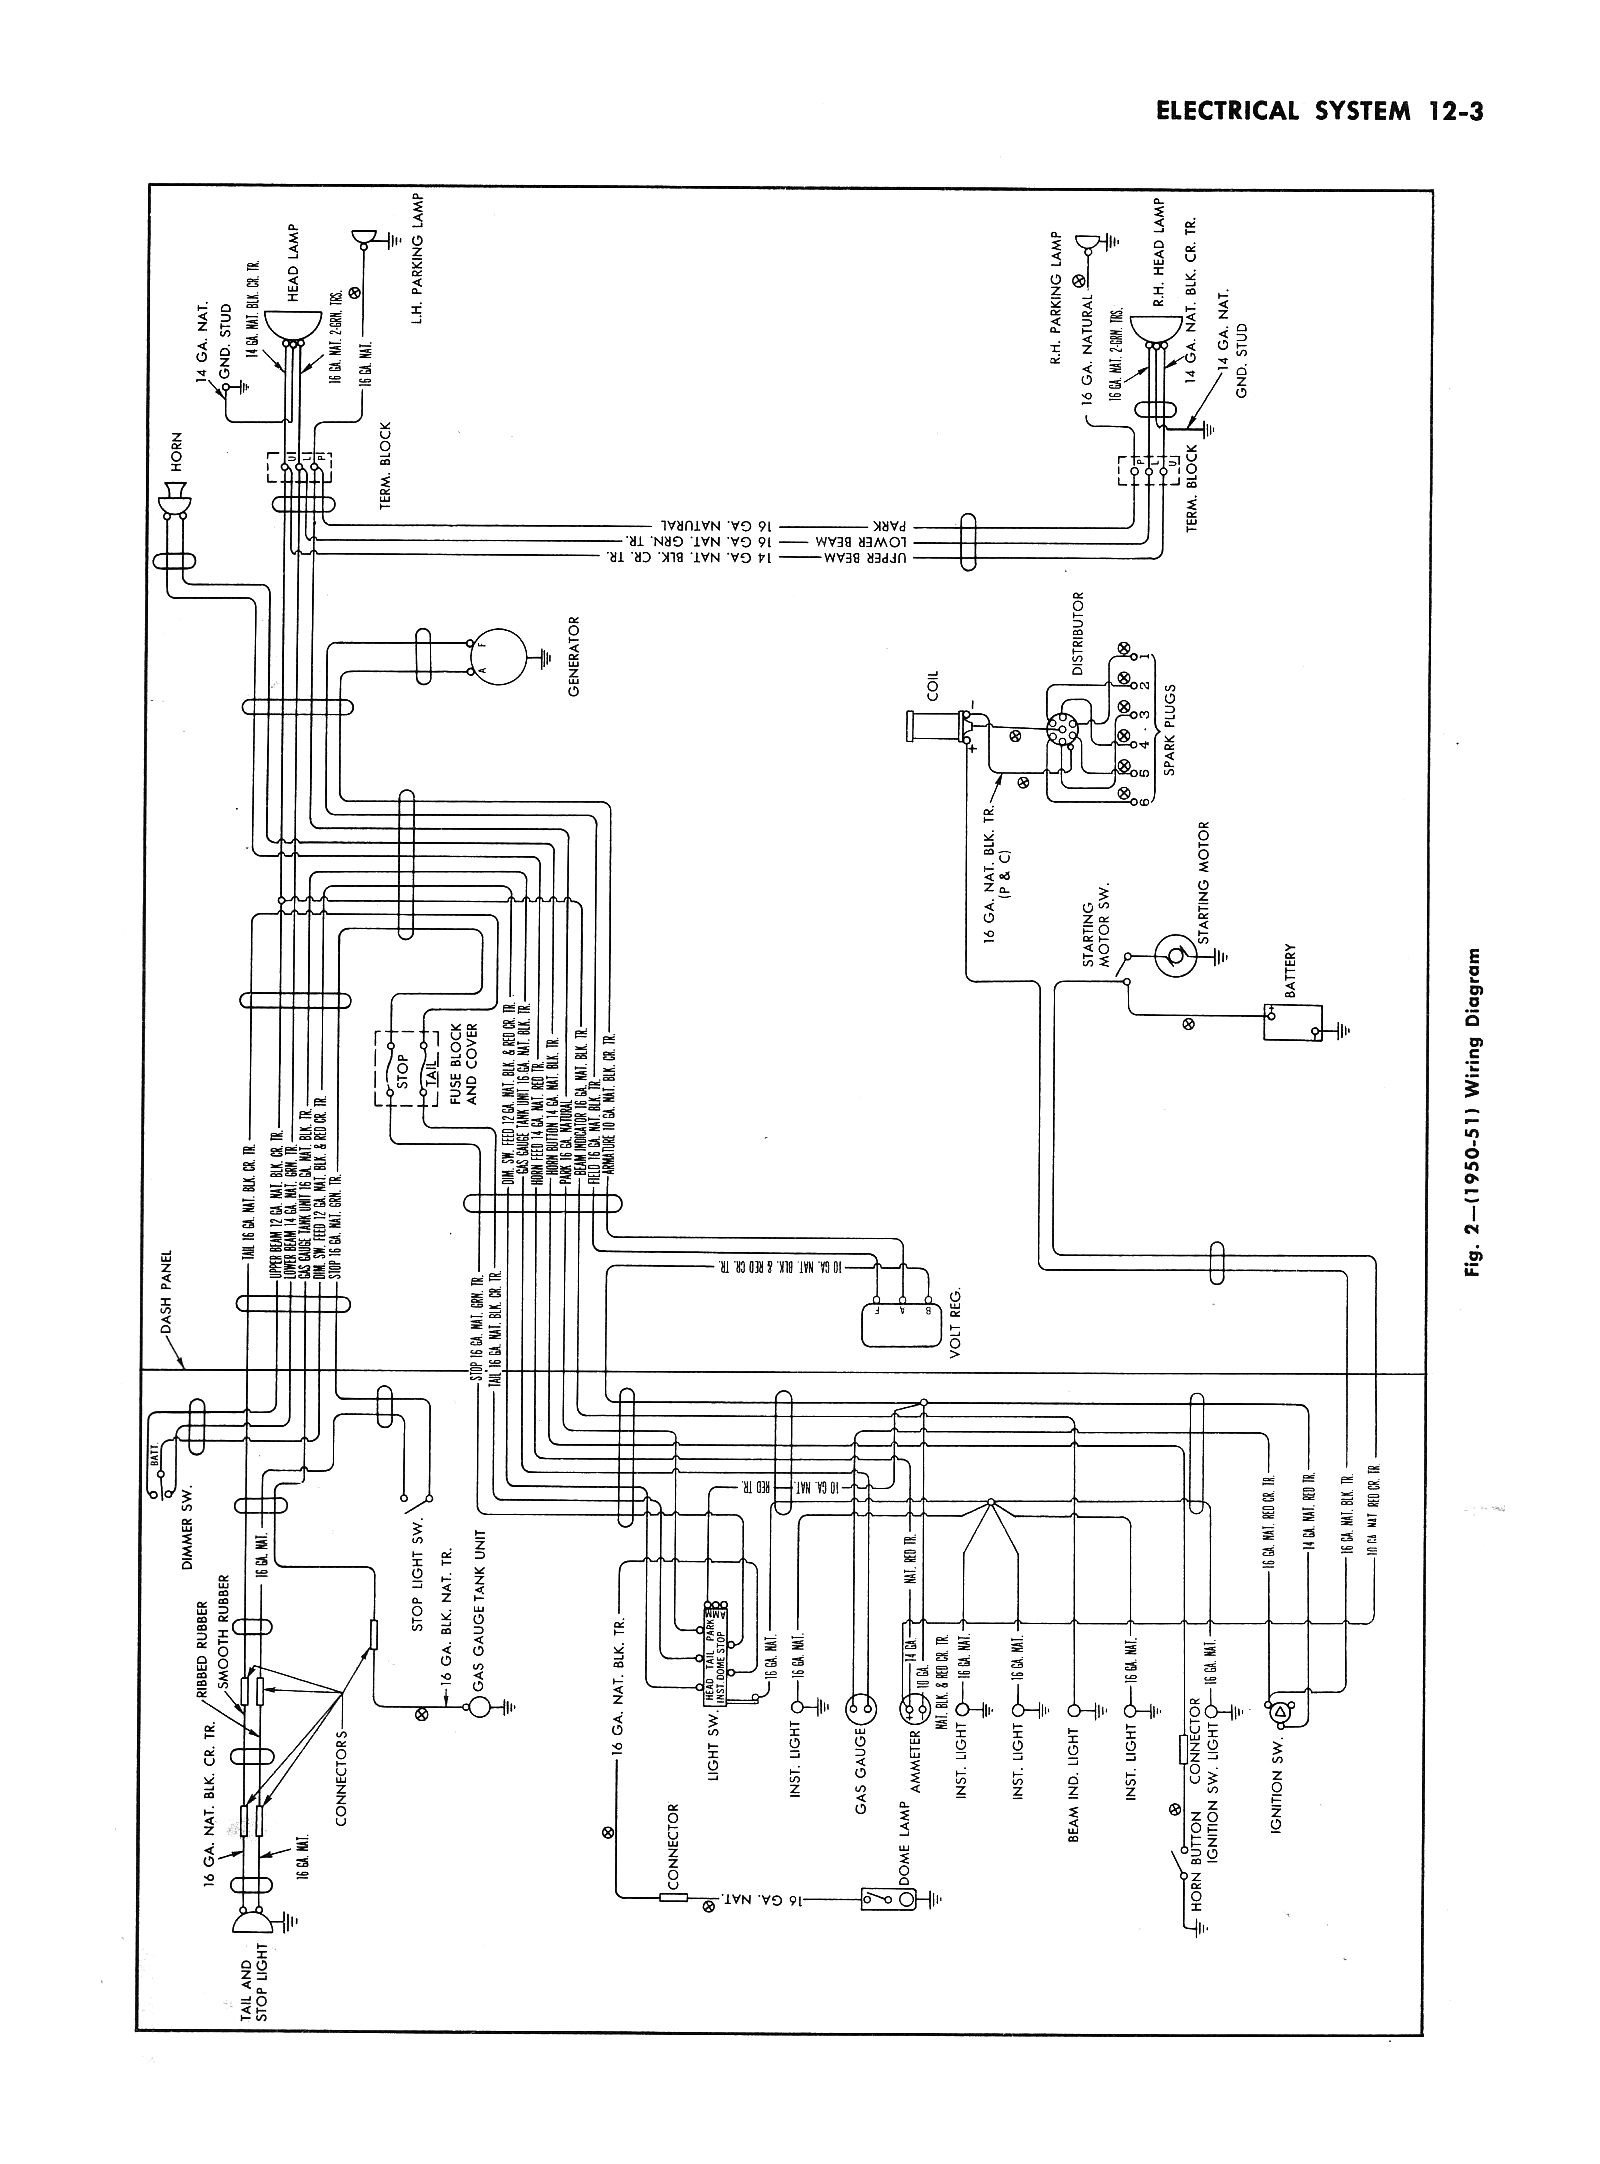 wiring diagram 65c 10 truck wiring diagram House Wiring Circuits Diagram race car wiring harness kit best wiring library1950 truck wiring 1950 passenger car wiring